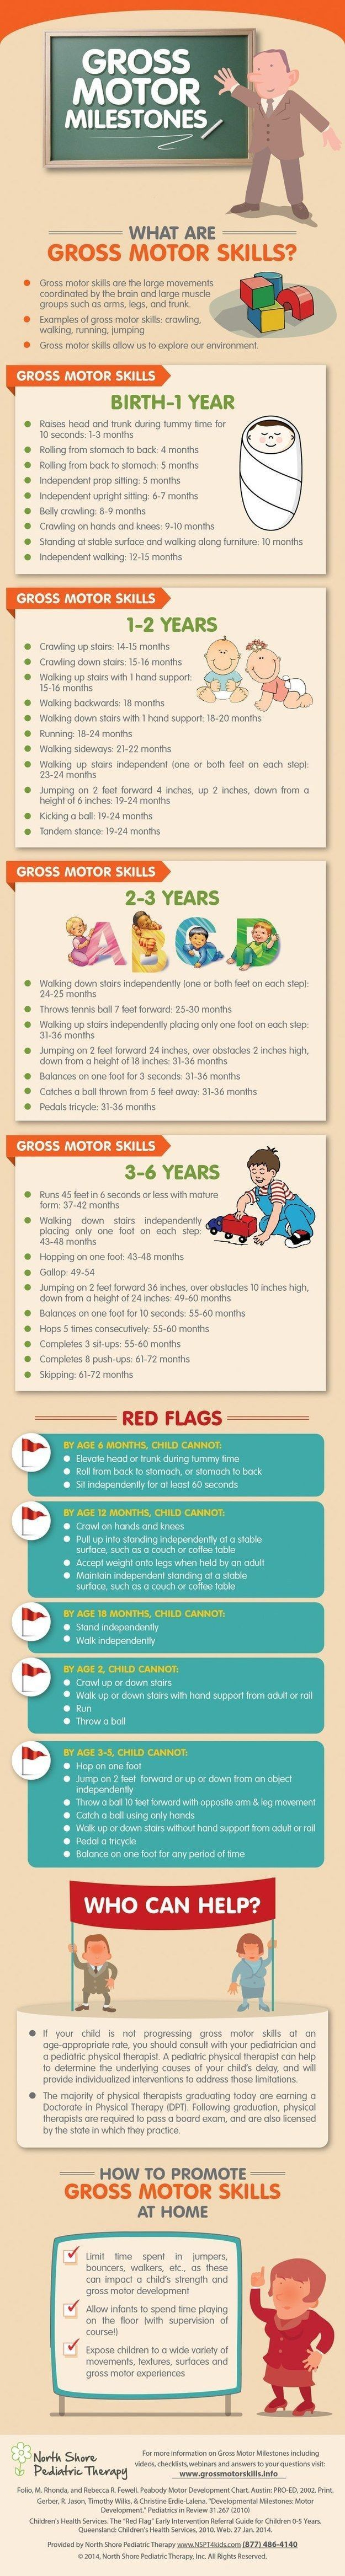 25 best ideas about child development activities on for What are gross motor skills in child development